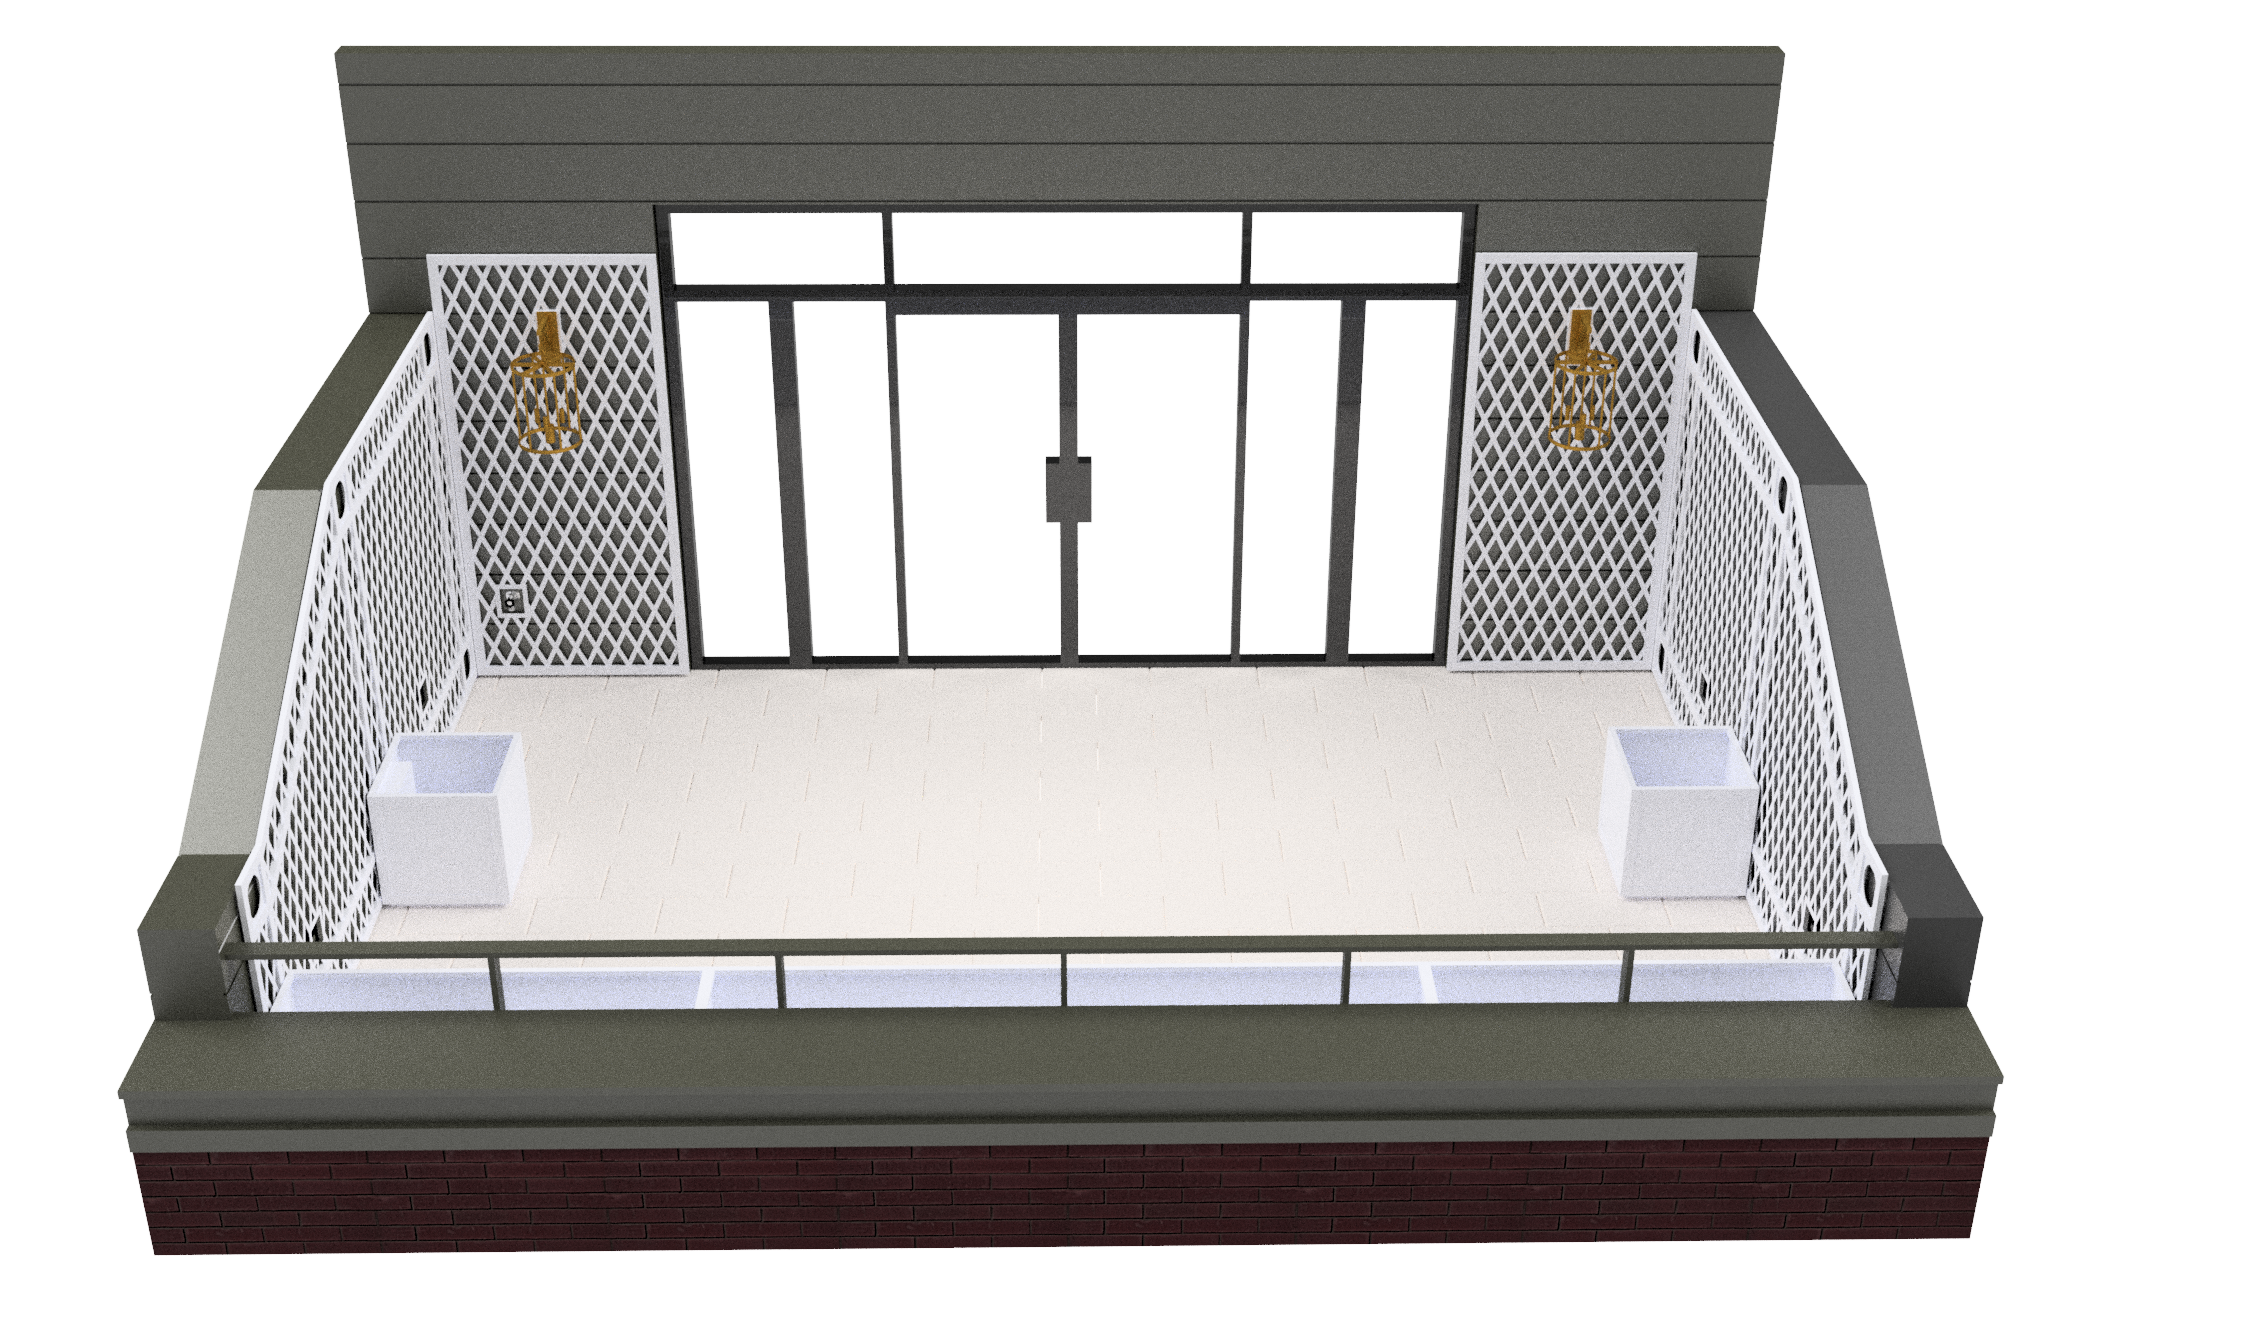 ASSEMBLY - SOUTH FRONT FLOORPLAN - W-003